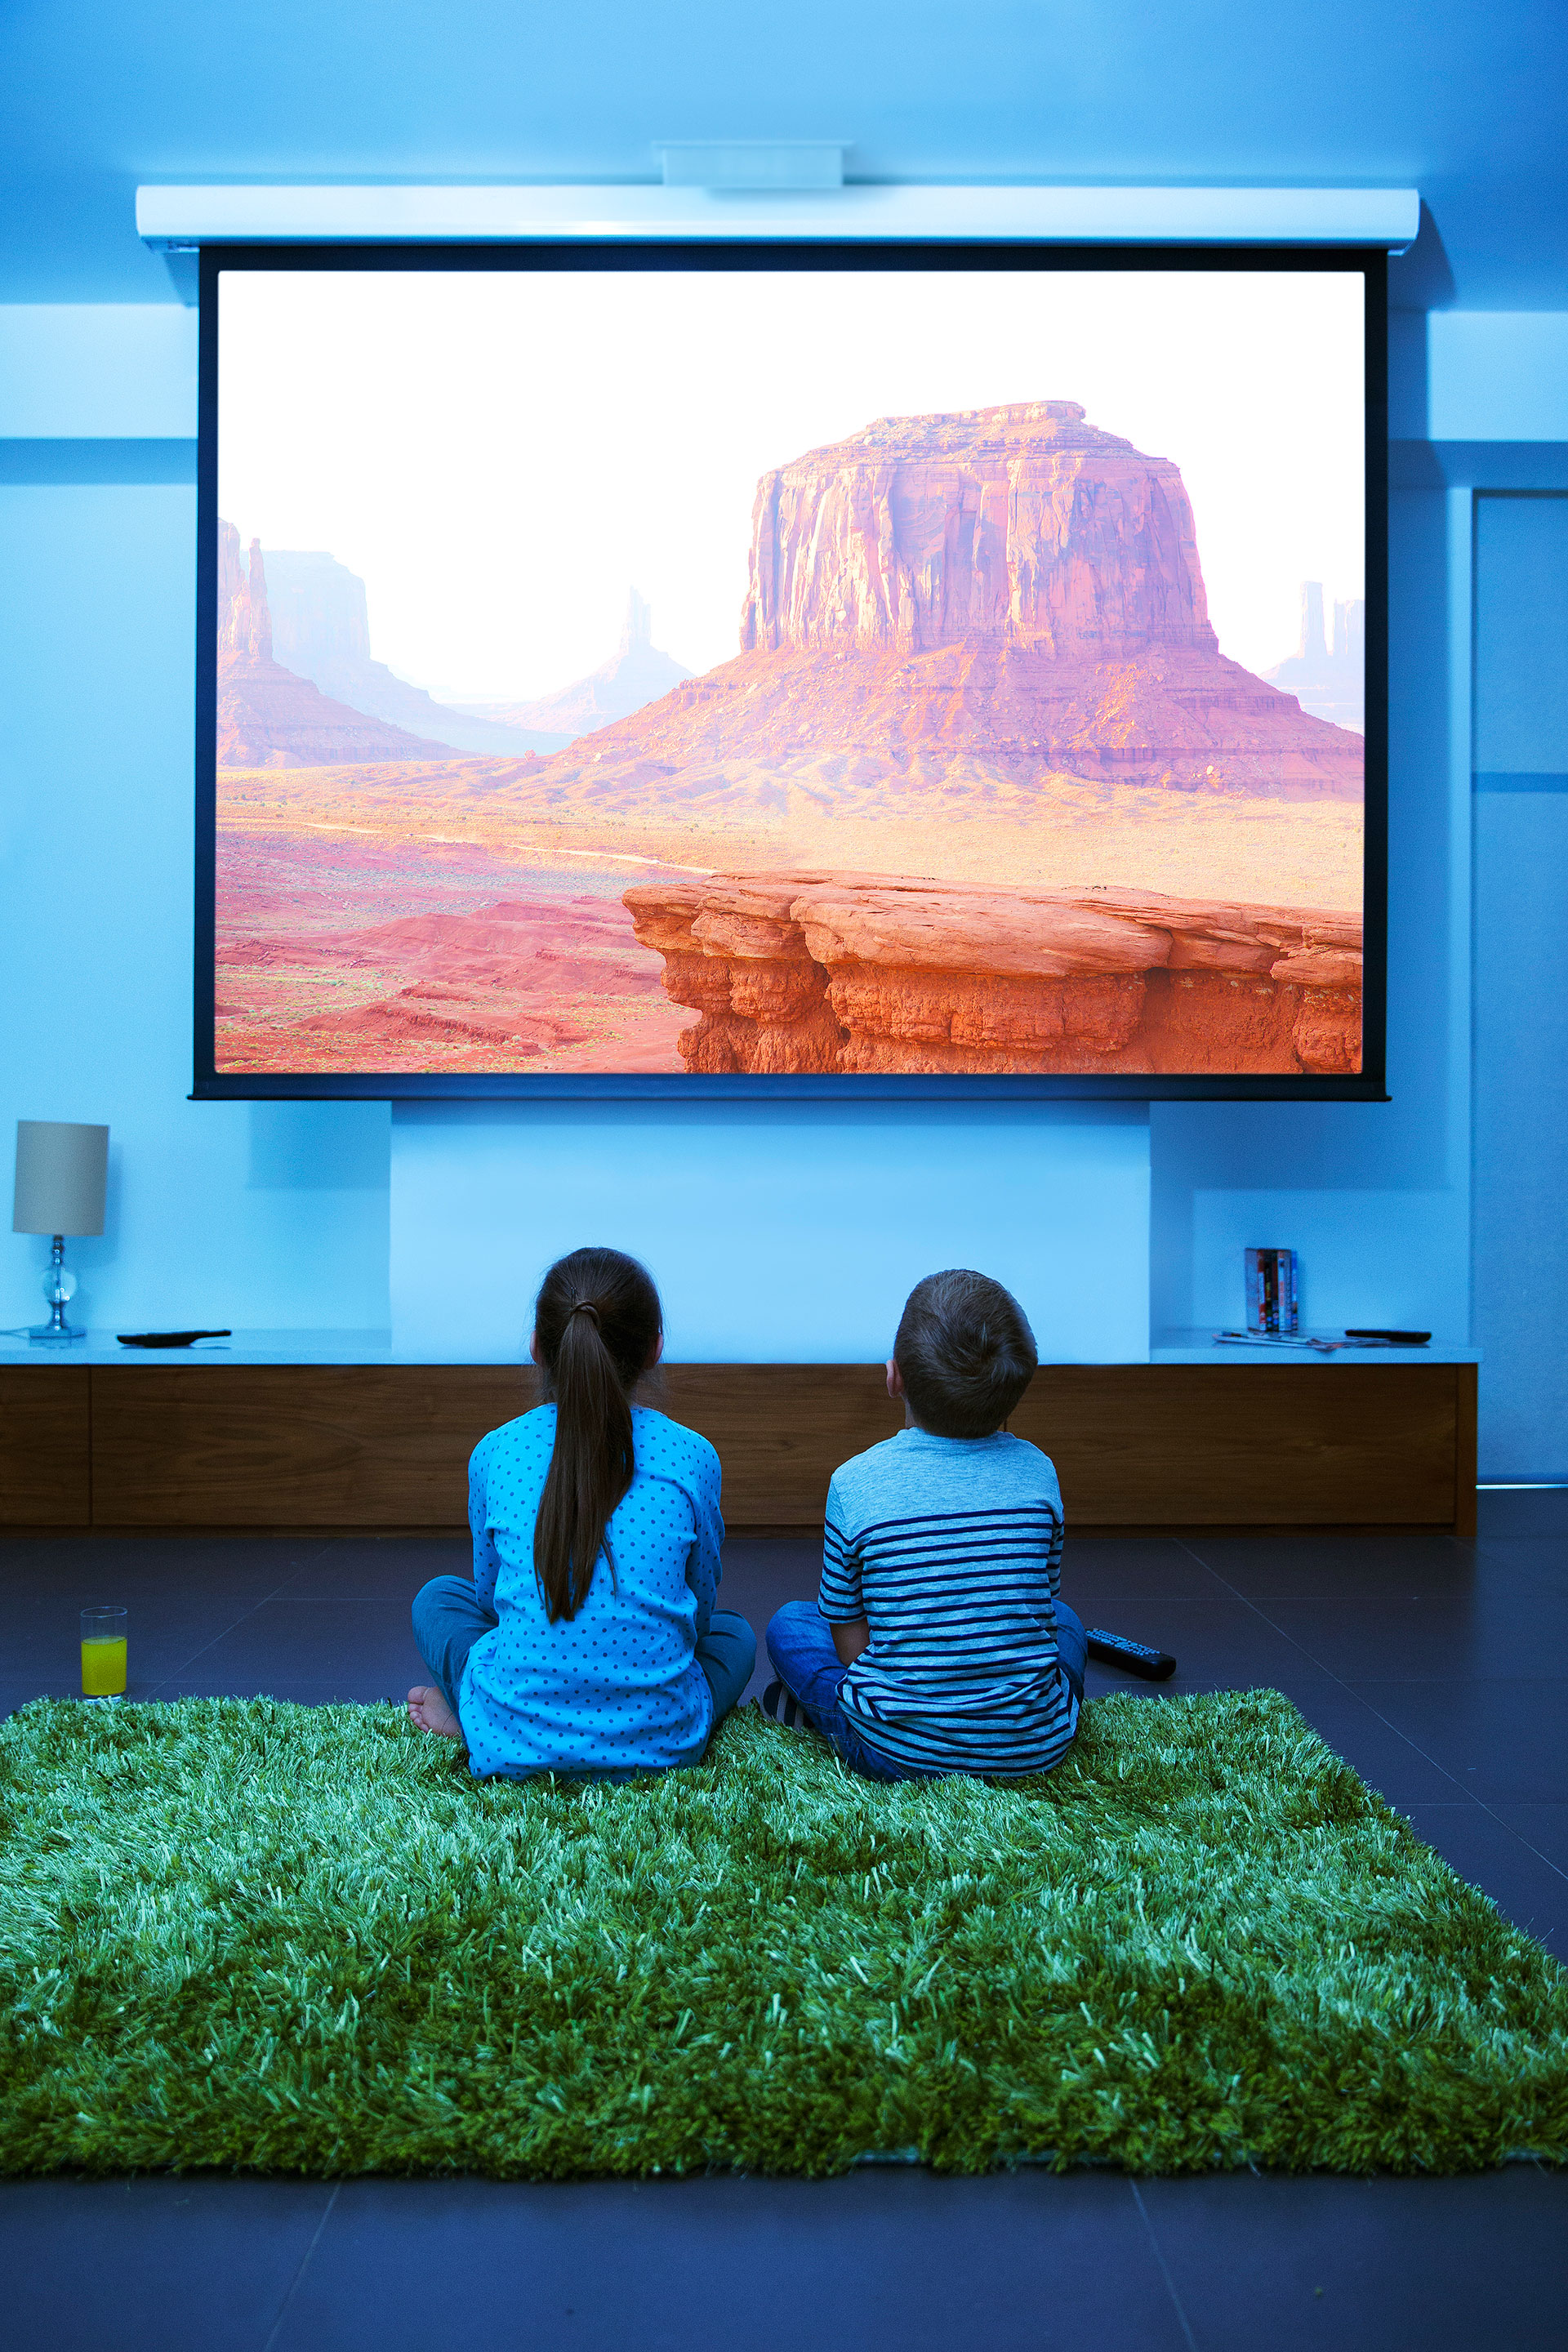 "Up your entertainment set-up                                                  $500–$900                                                  Hollywood stars have been installing home cinemas for years, but falling prices and improving technology mean you can do it too. The average price of a home projector was $869 last year, according to PCMag.com data, down from more than $3,700 in 2001. Meanwhile, oversize ""home theater"" televisions still cost about $2,700 on average. What's more, plenty of the mid-price options, like the $545 Optoma HD142X and the $700 Epson PowerLite 1781W, got top marks from online reviewers. Projectors might do more these days, but you'll still need to make some compromises. Though most home projector models come with HDMI, USB, and computer connection ports, connecting to cable is difficult, so they work best for cord cutters. Additionally, built-in sound is generally not as good on projectors as it is on TVs. If that's a deal breaker, consider connecting a speaker system."